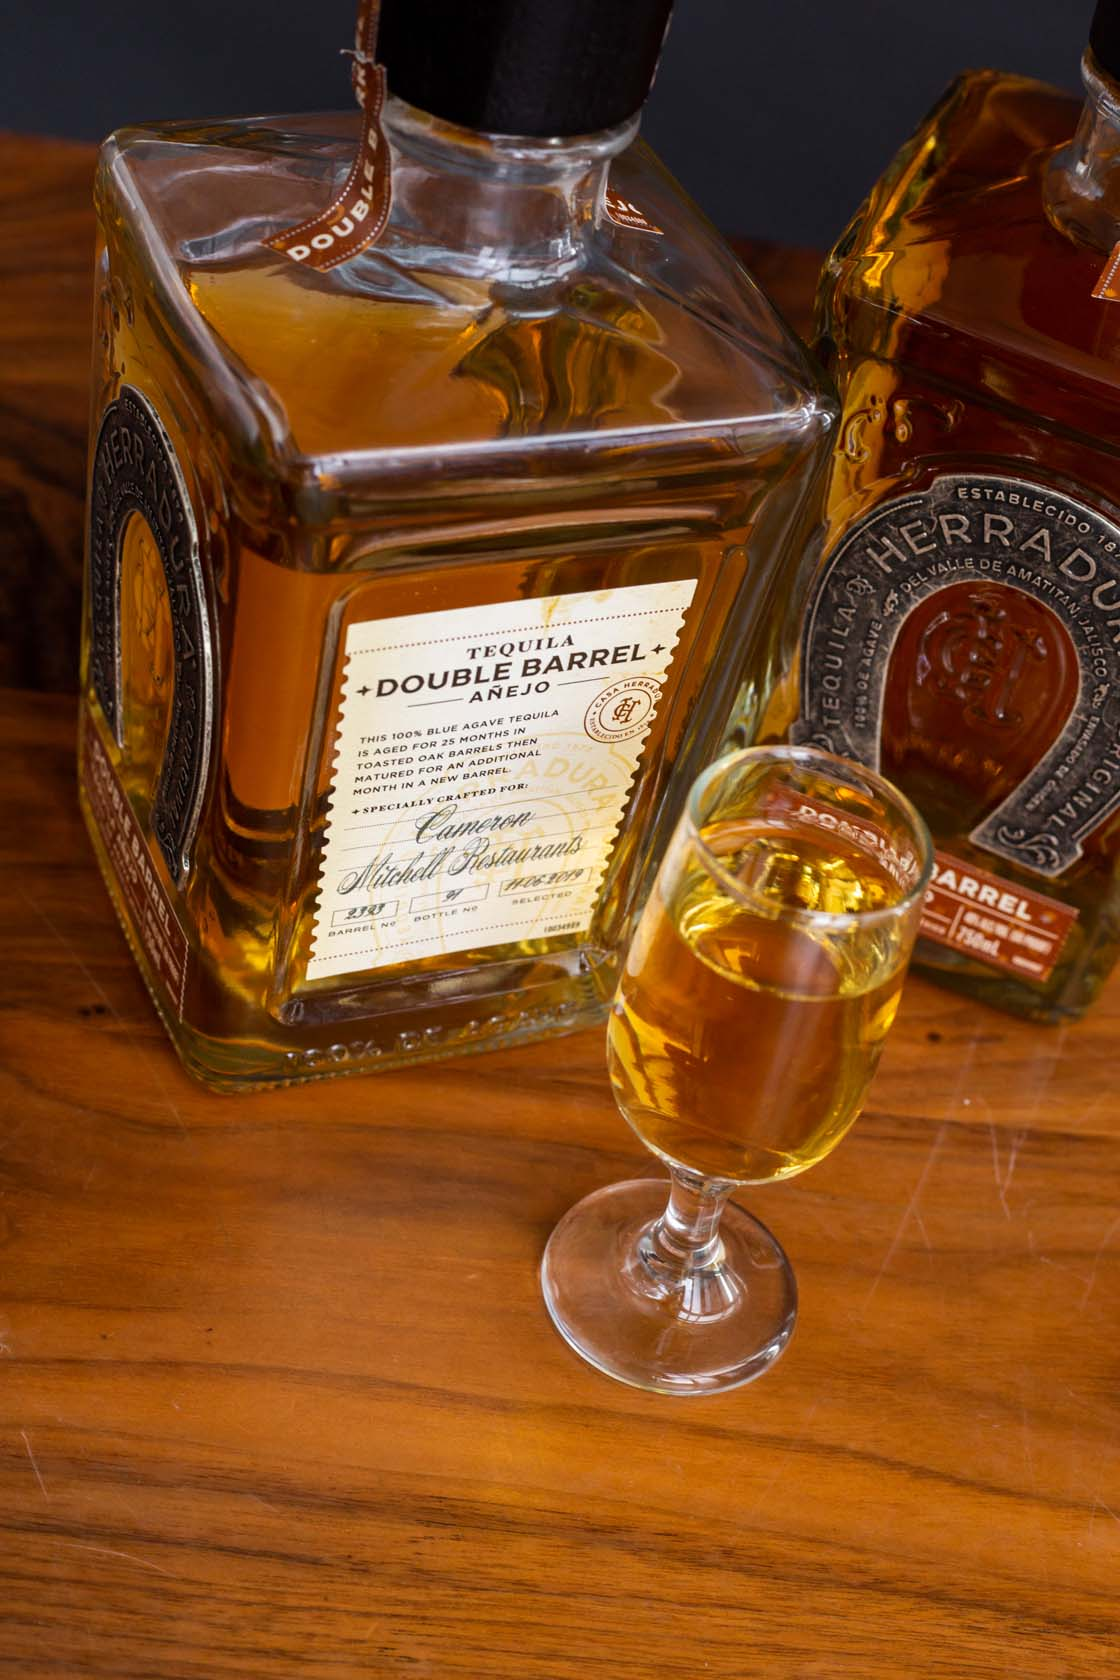 Bottle of Double Barrel Anejo, Herradura tequila with glass of tequila served neat.